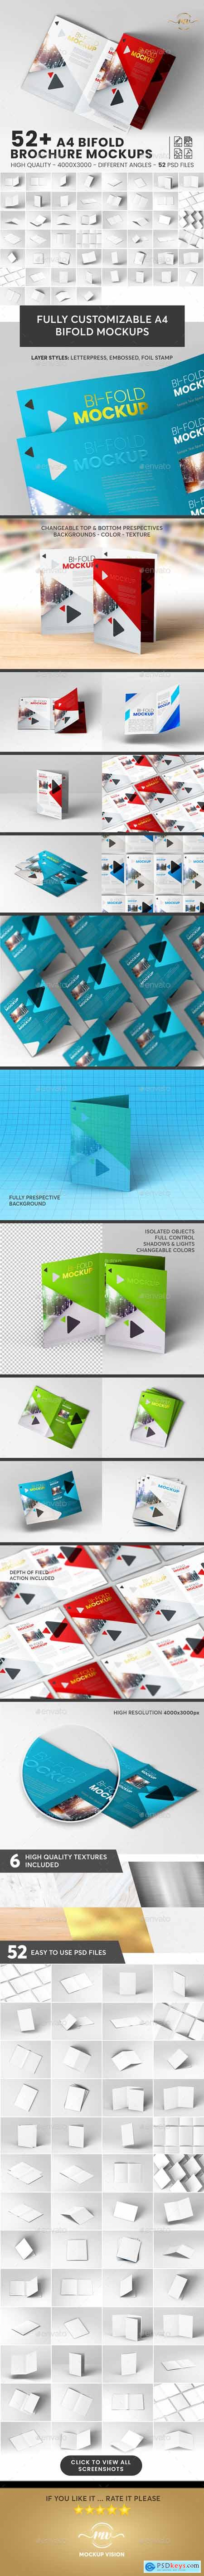 Graphicriver 52+ A4 Bifold, Brochure Mockup Bundle